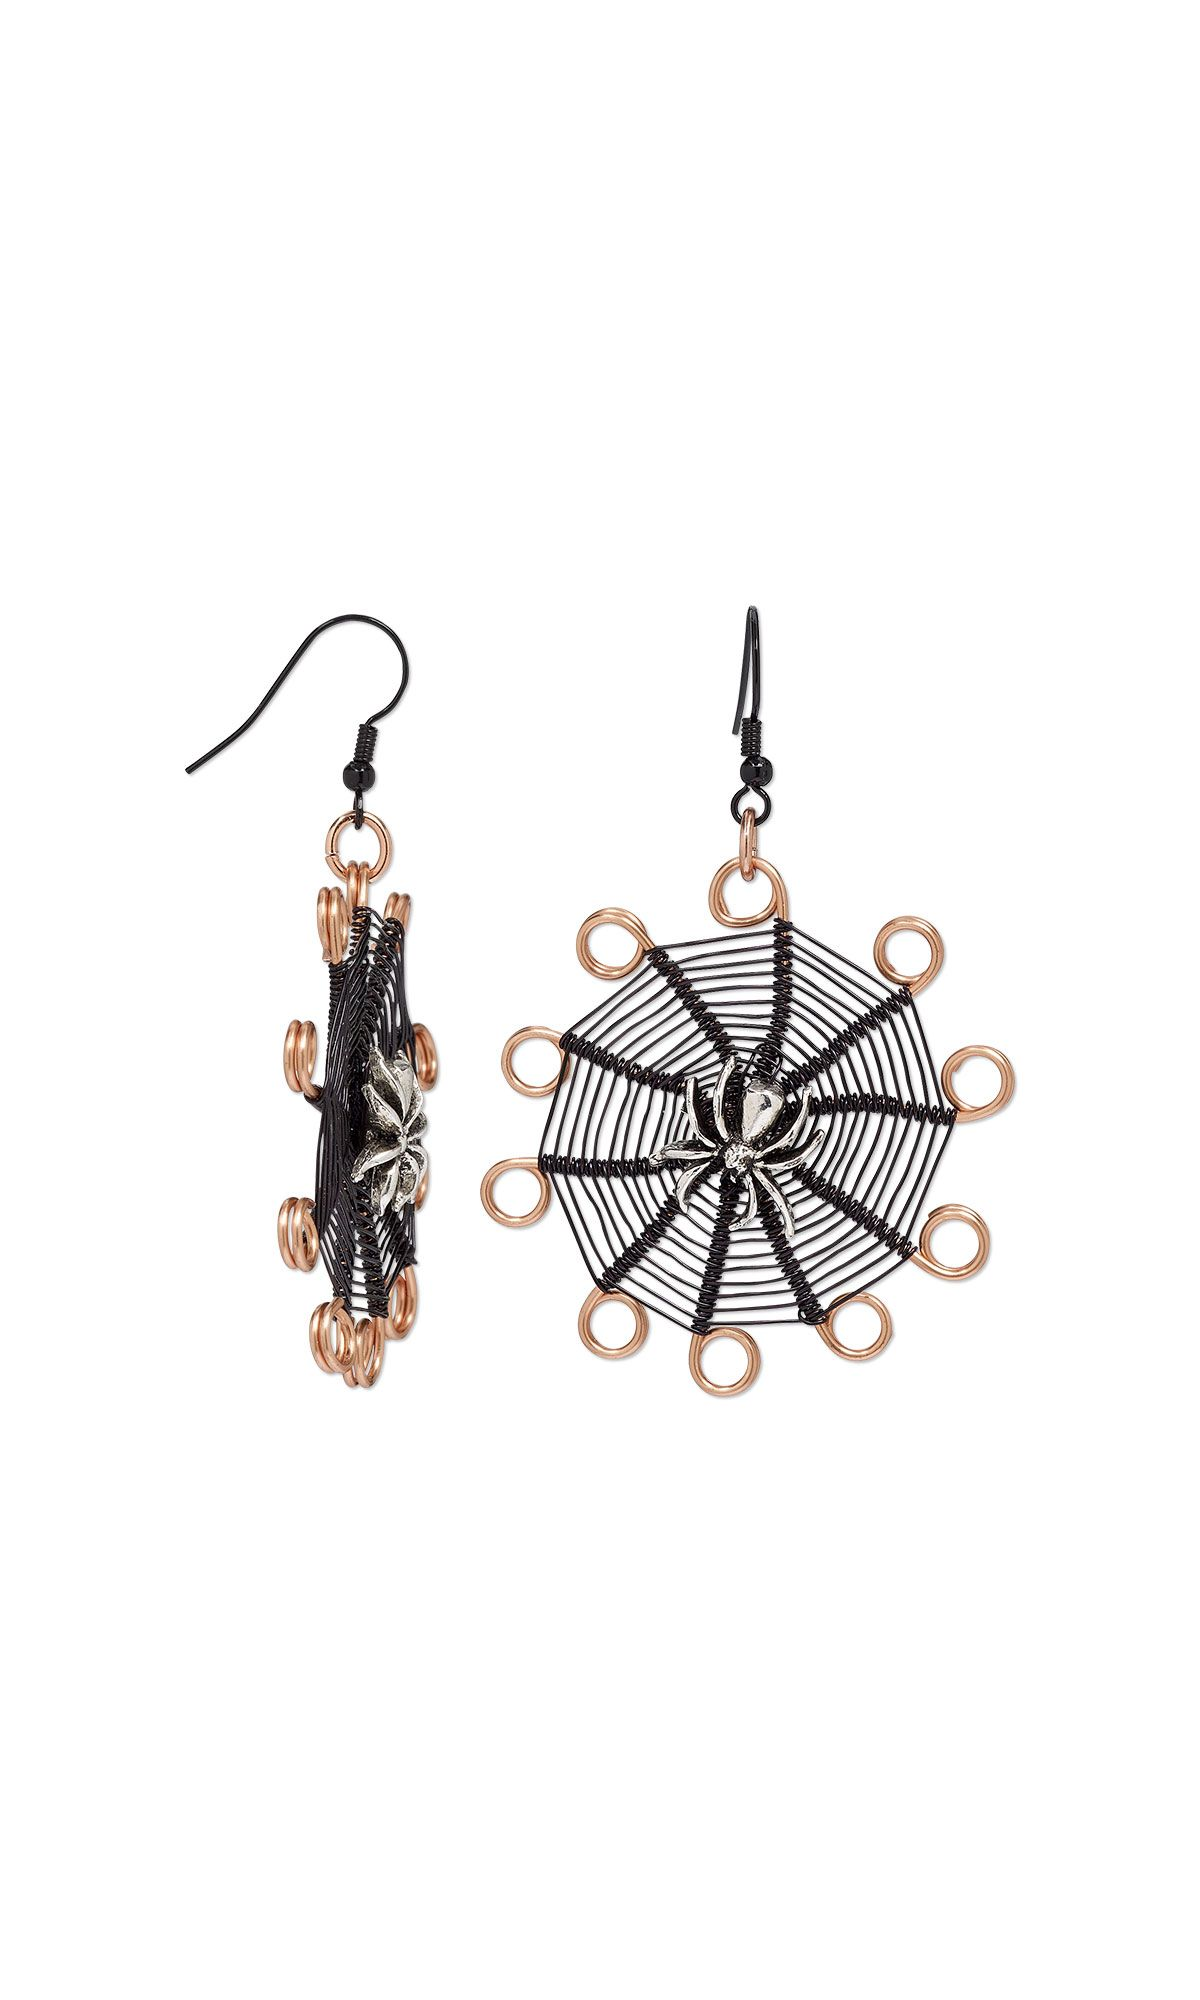 Jewelry Design - Earrings with Antiqued Pewter Bead and Wirework ...